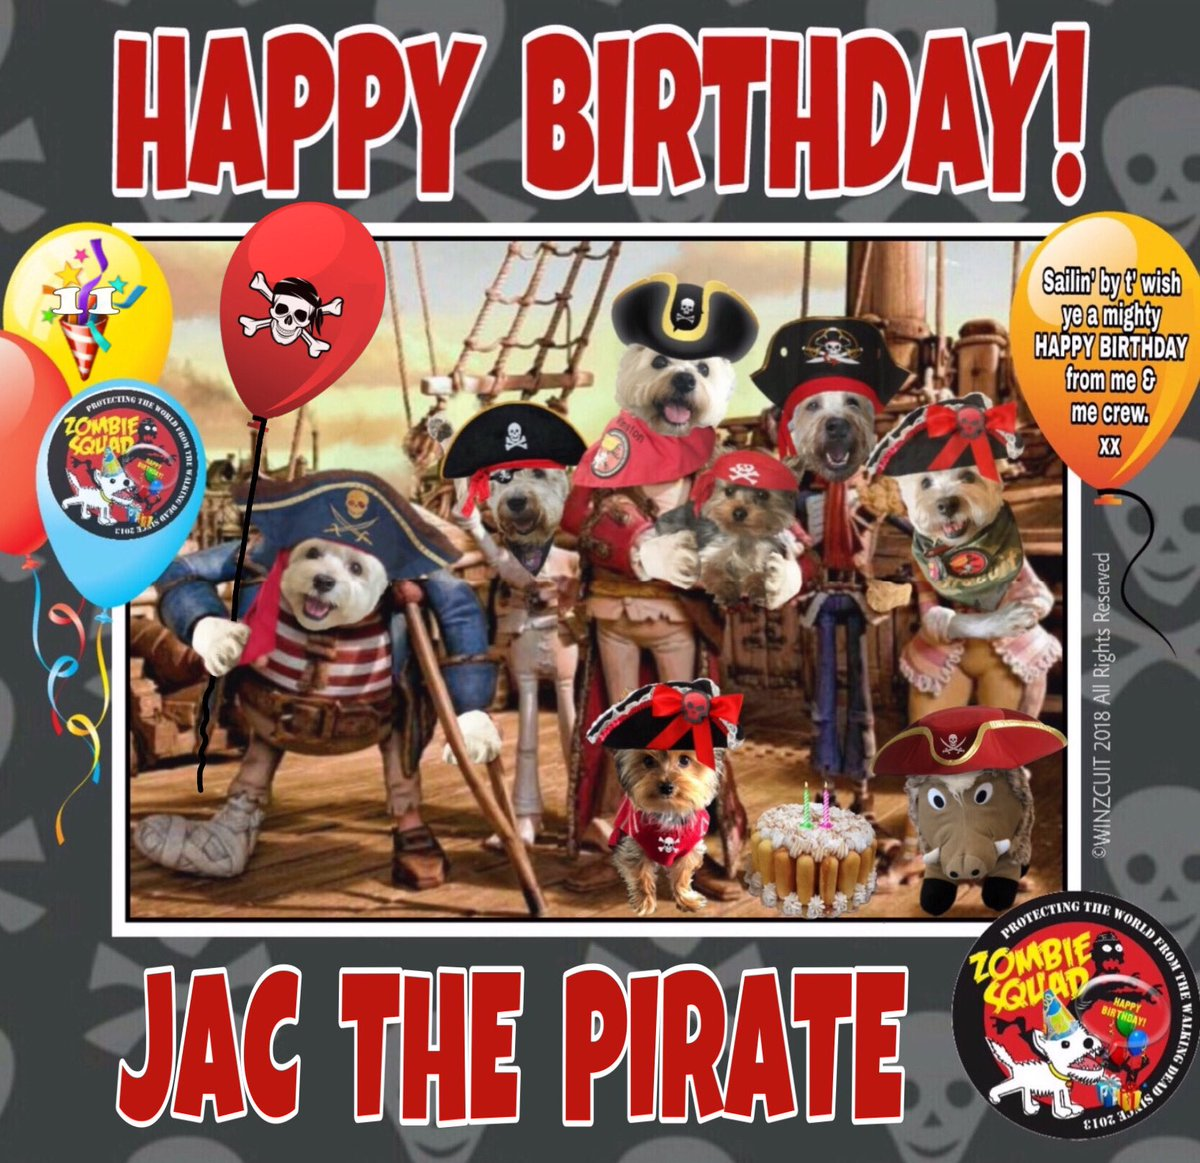 🎂Wishin' a very 🎁HAPPY 11th BIRTHDAY🎉 to our pawtastic shipmate, JAC THE PIRATE from Leada Billy & yer ZombieSquad crew. We hope yer special day be full o' tasty treats, belly rubs 'n cayke, mez heartie. Arrrrr!! ☠️⚓ 💜🎂🎁🎈🎉 @Woollysausage @ZombieSquadHQ #ZSHQ https://t.co/gpwJpxkMec